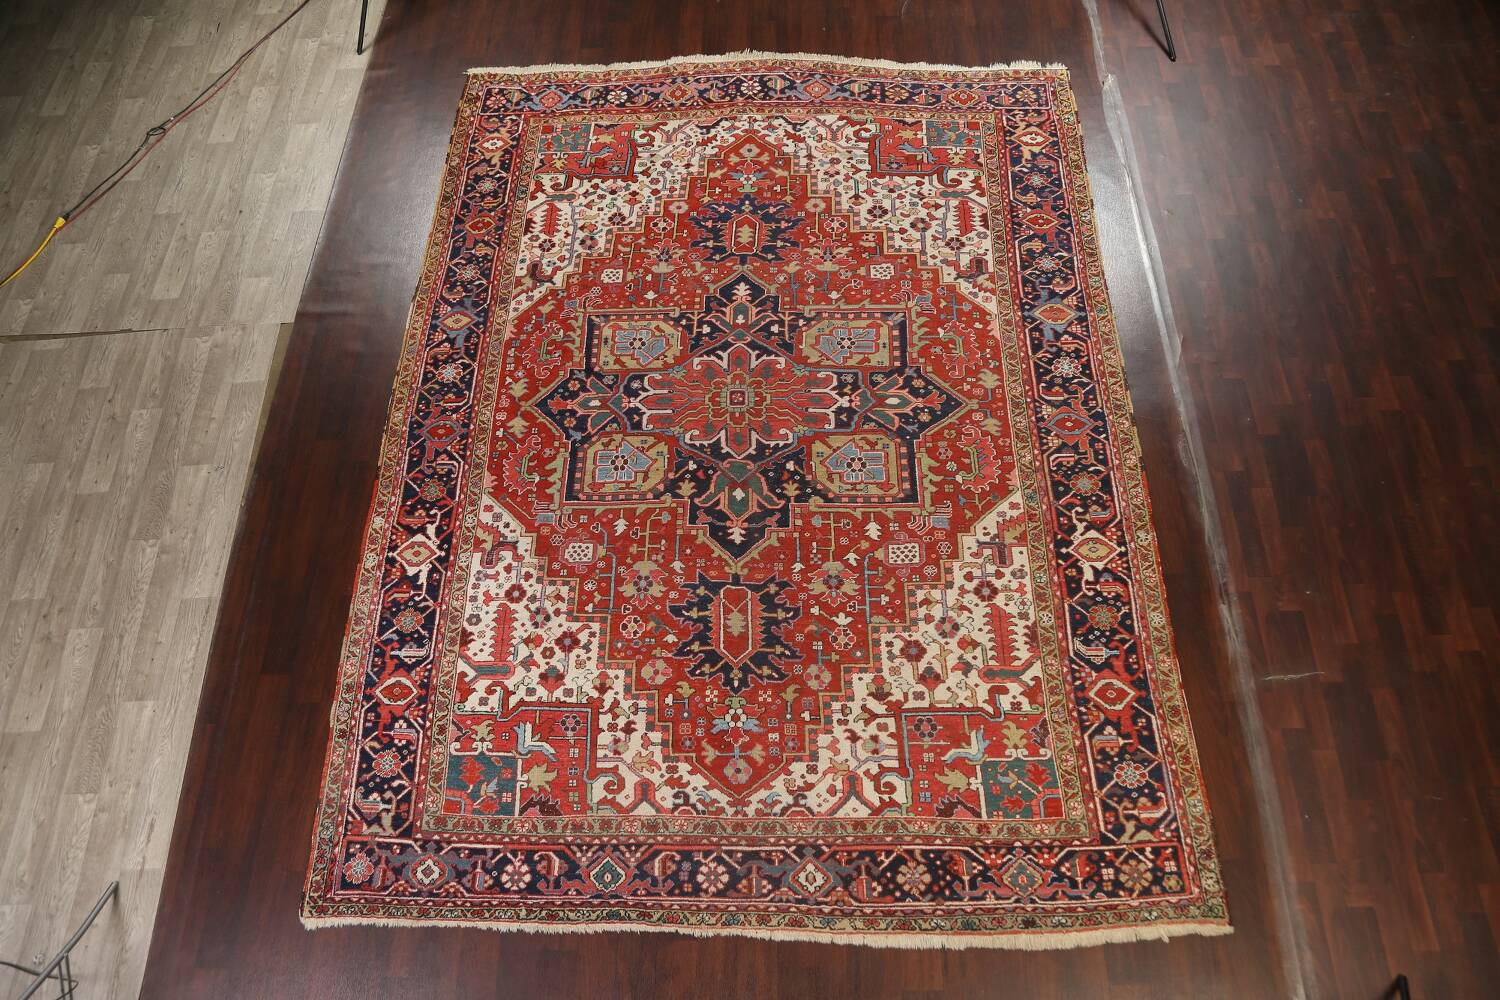 Pre-1900 Antique Vegetable Dye Heriz Serapi Persian Area Rug 10x13 image 2